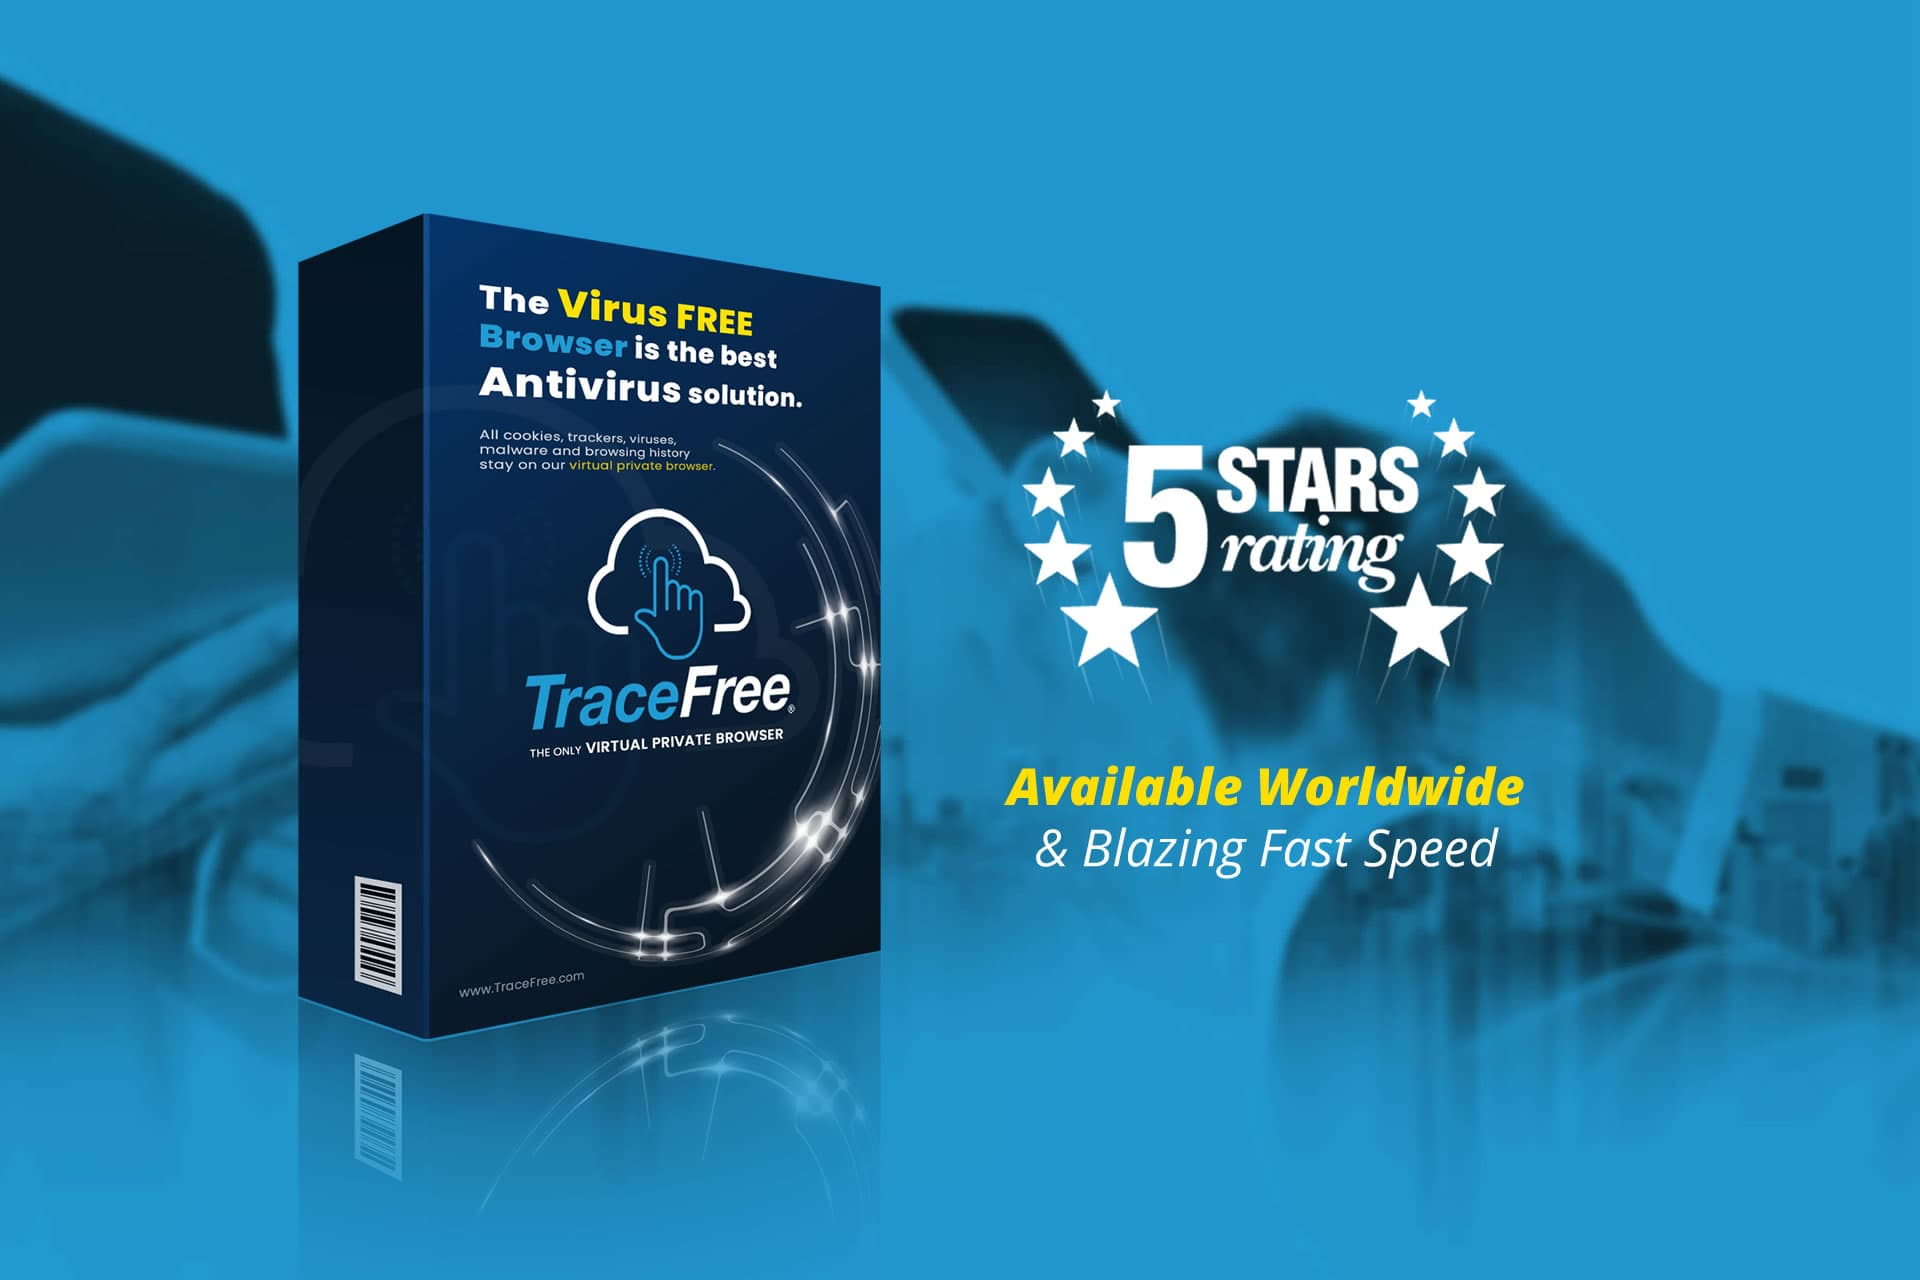 The Best Antivirus Software 2019 According to TechRadar TraceFree